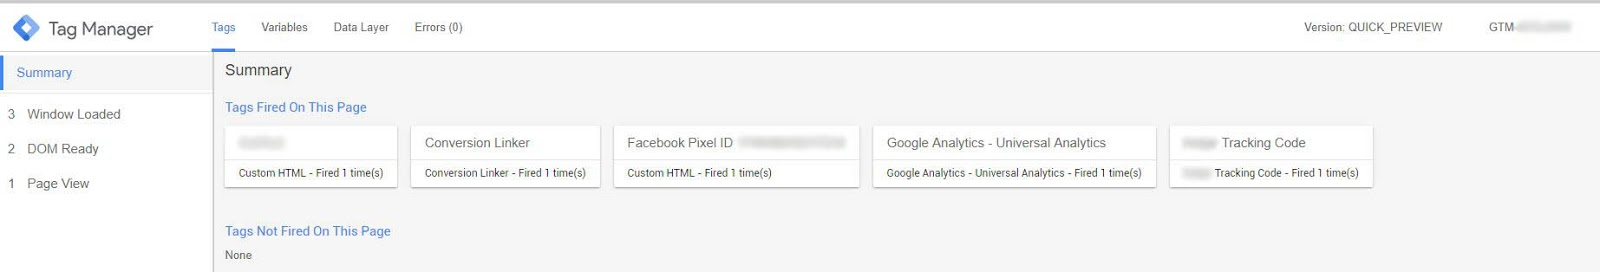 Preview of Google Tag Manager Website